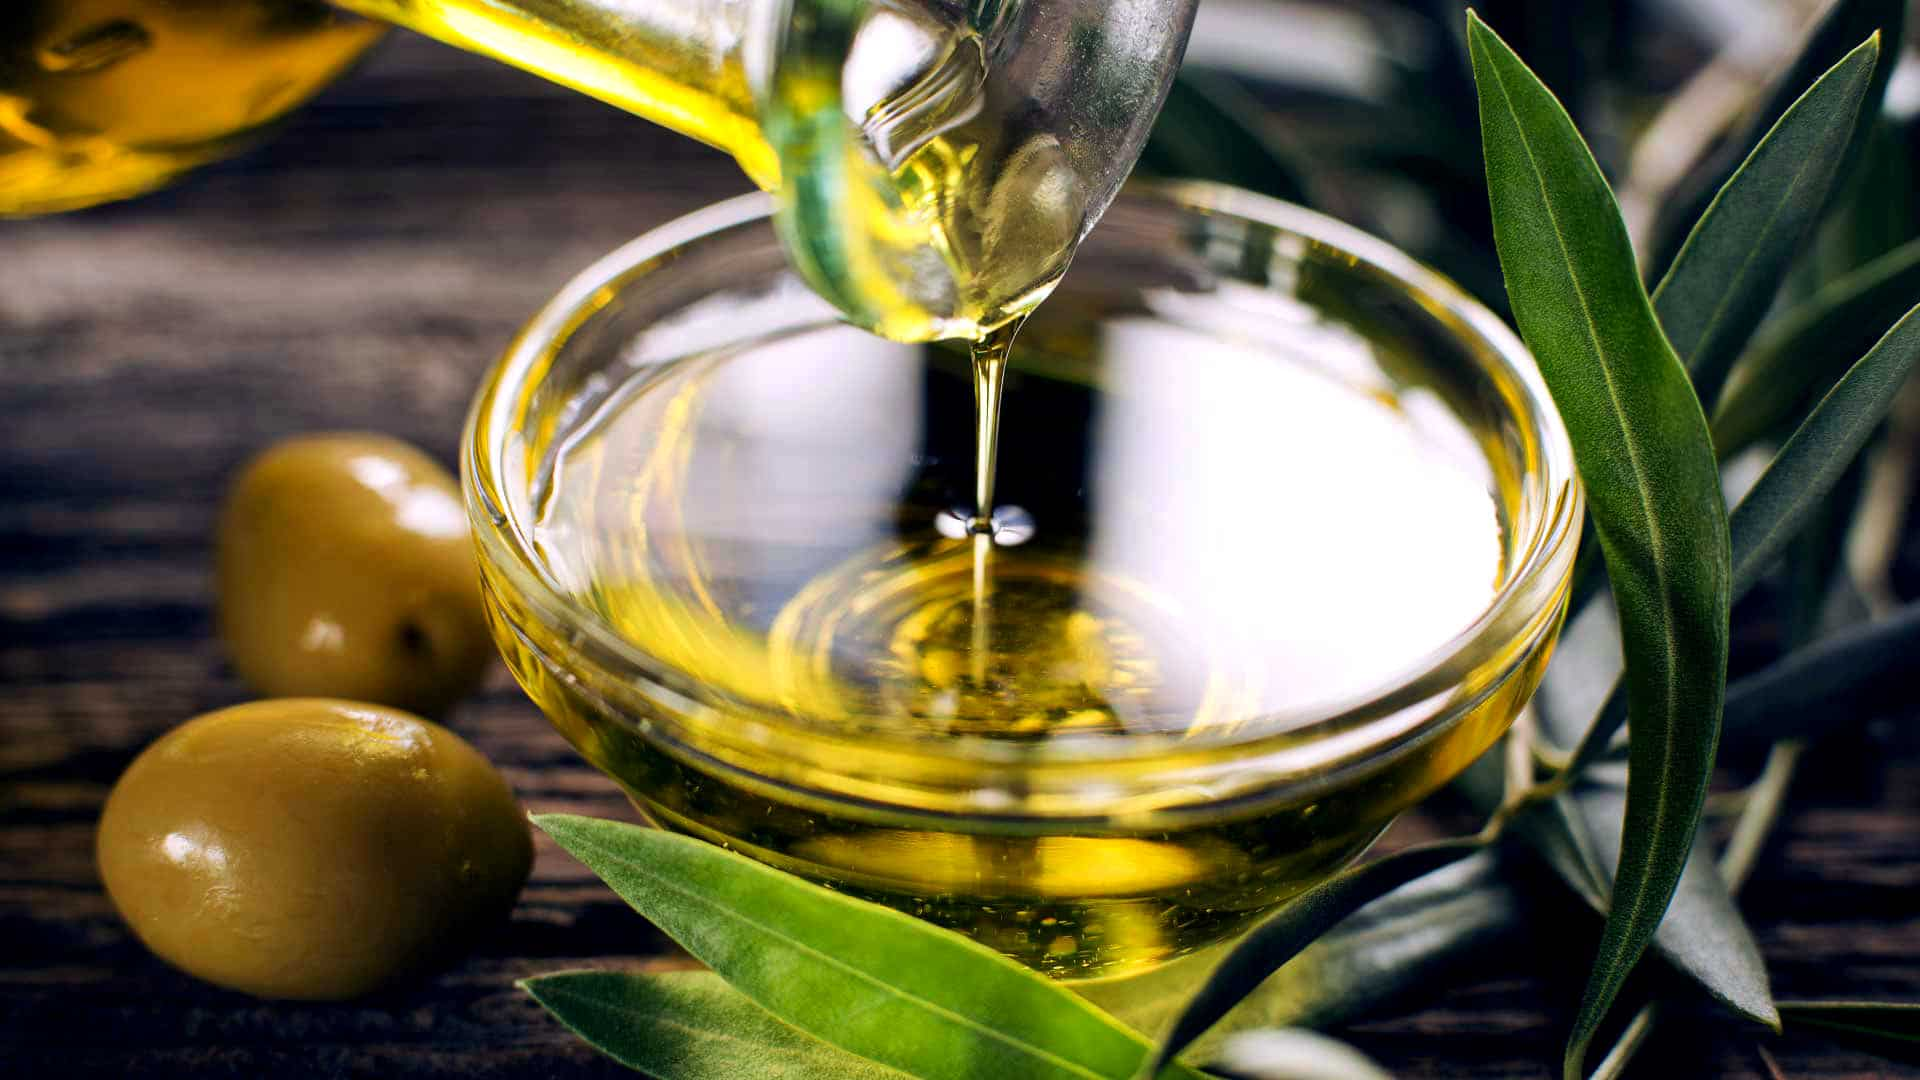 pouring olive oil in a glass cup